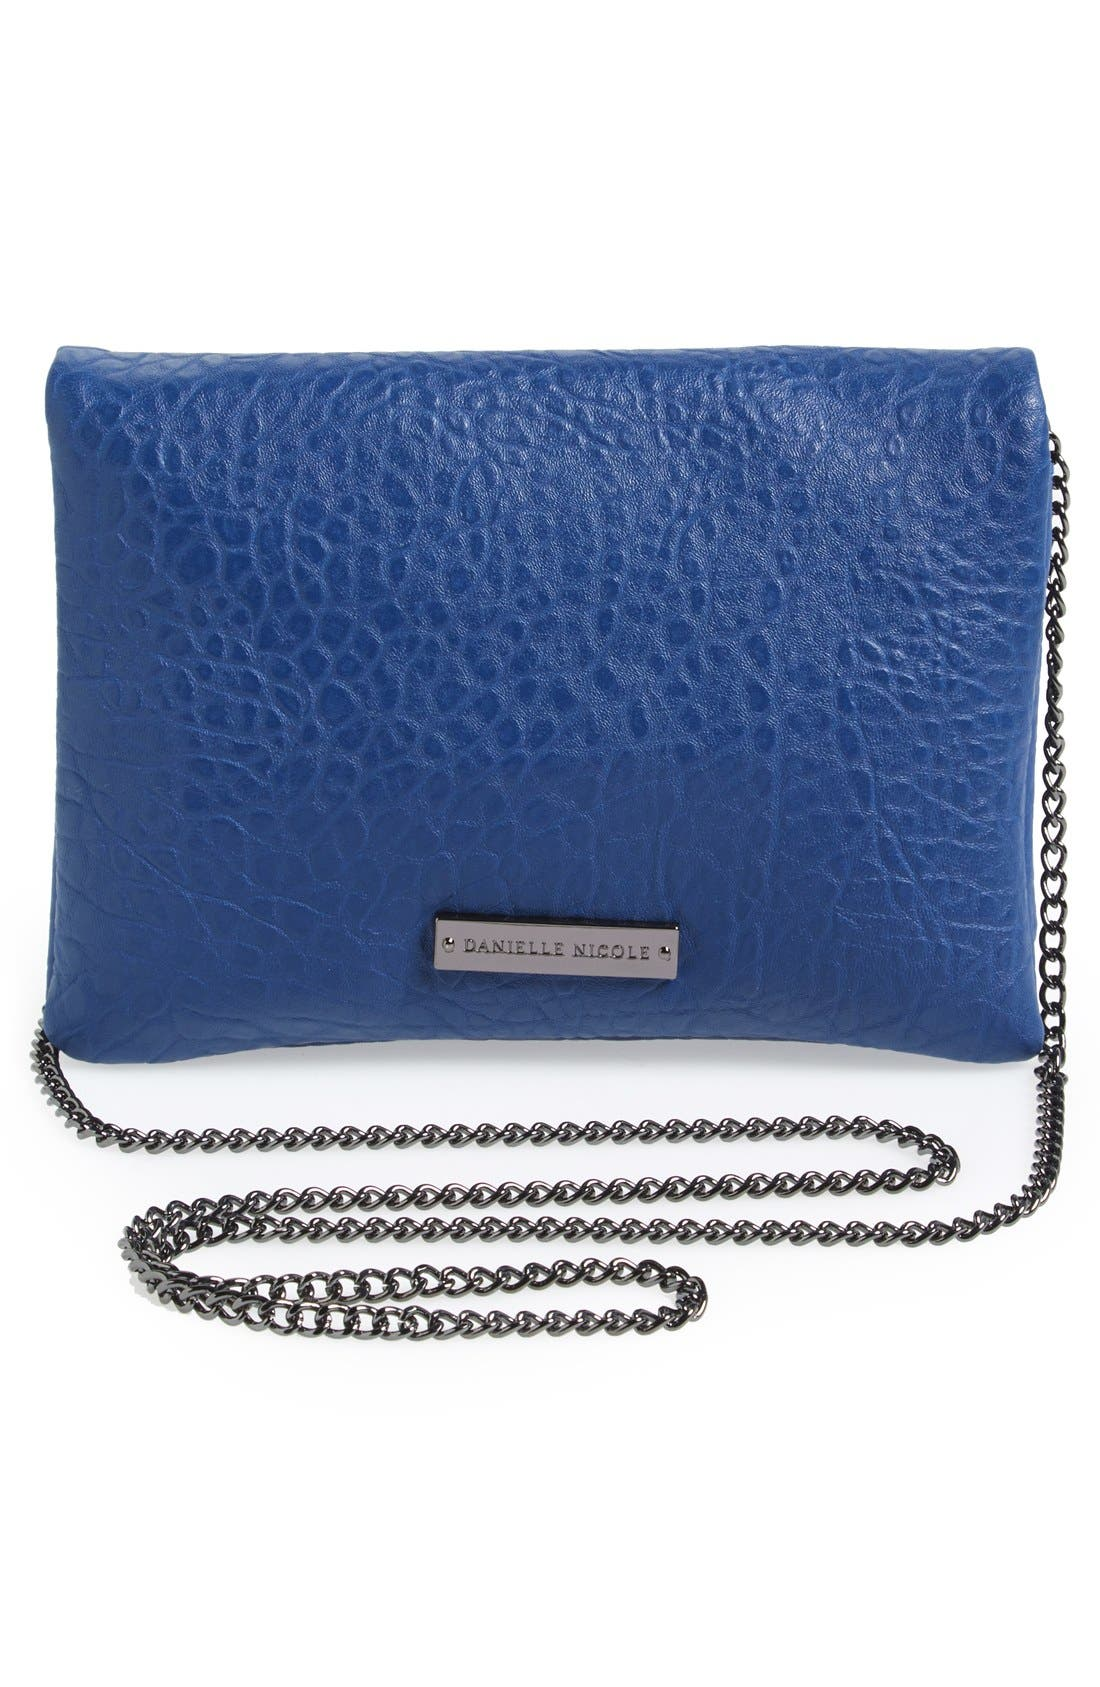 Alternate Image 3  - Danielle Nicole 'Libby' Convertible Crossbody Bag